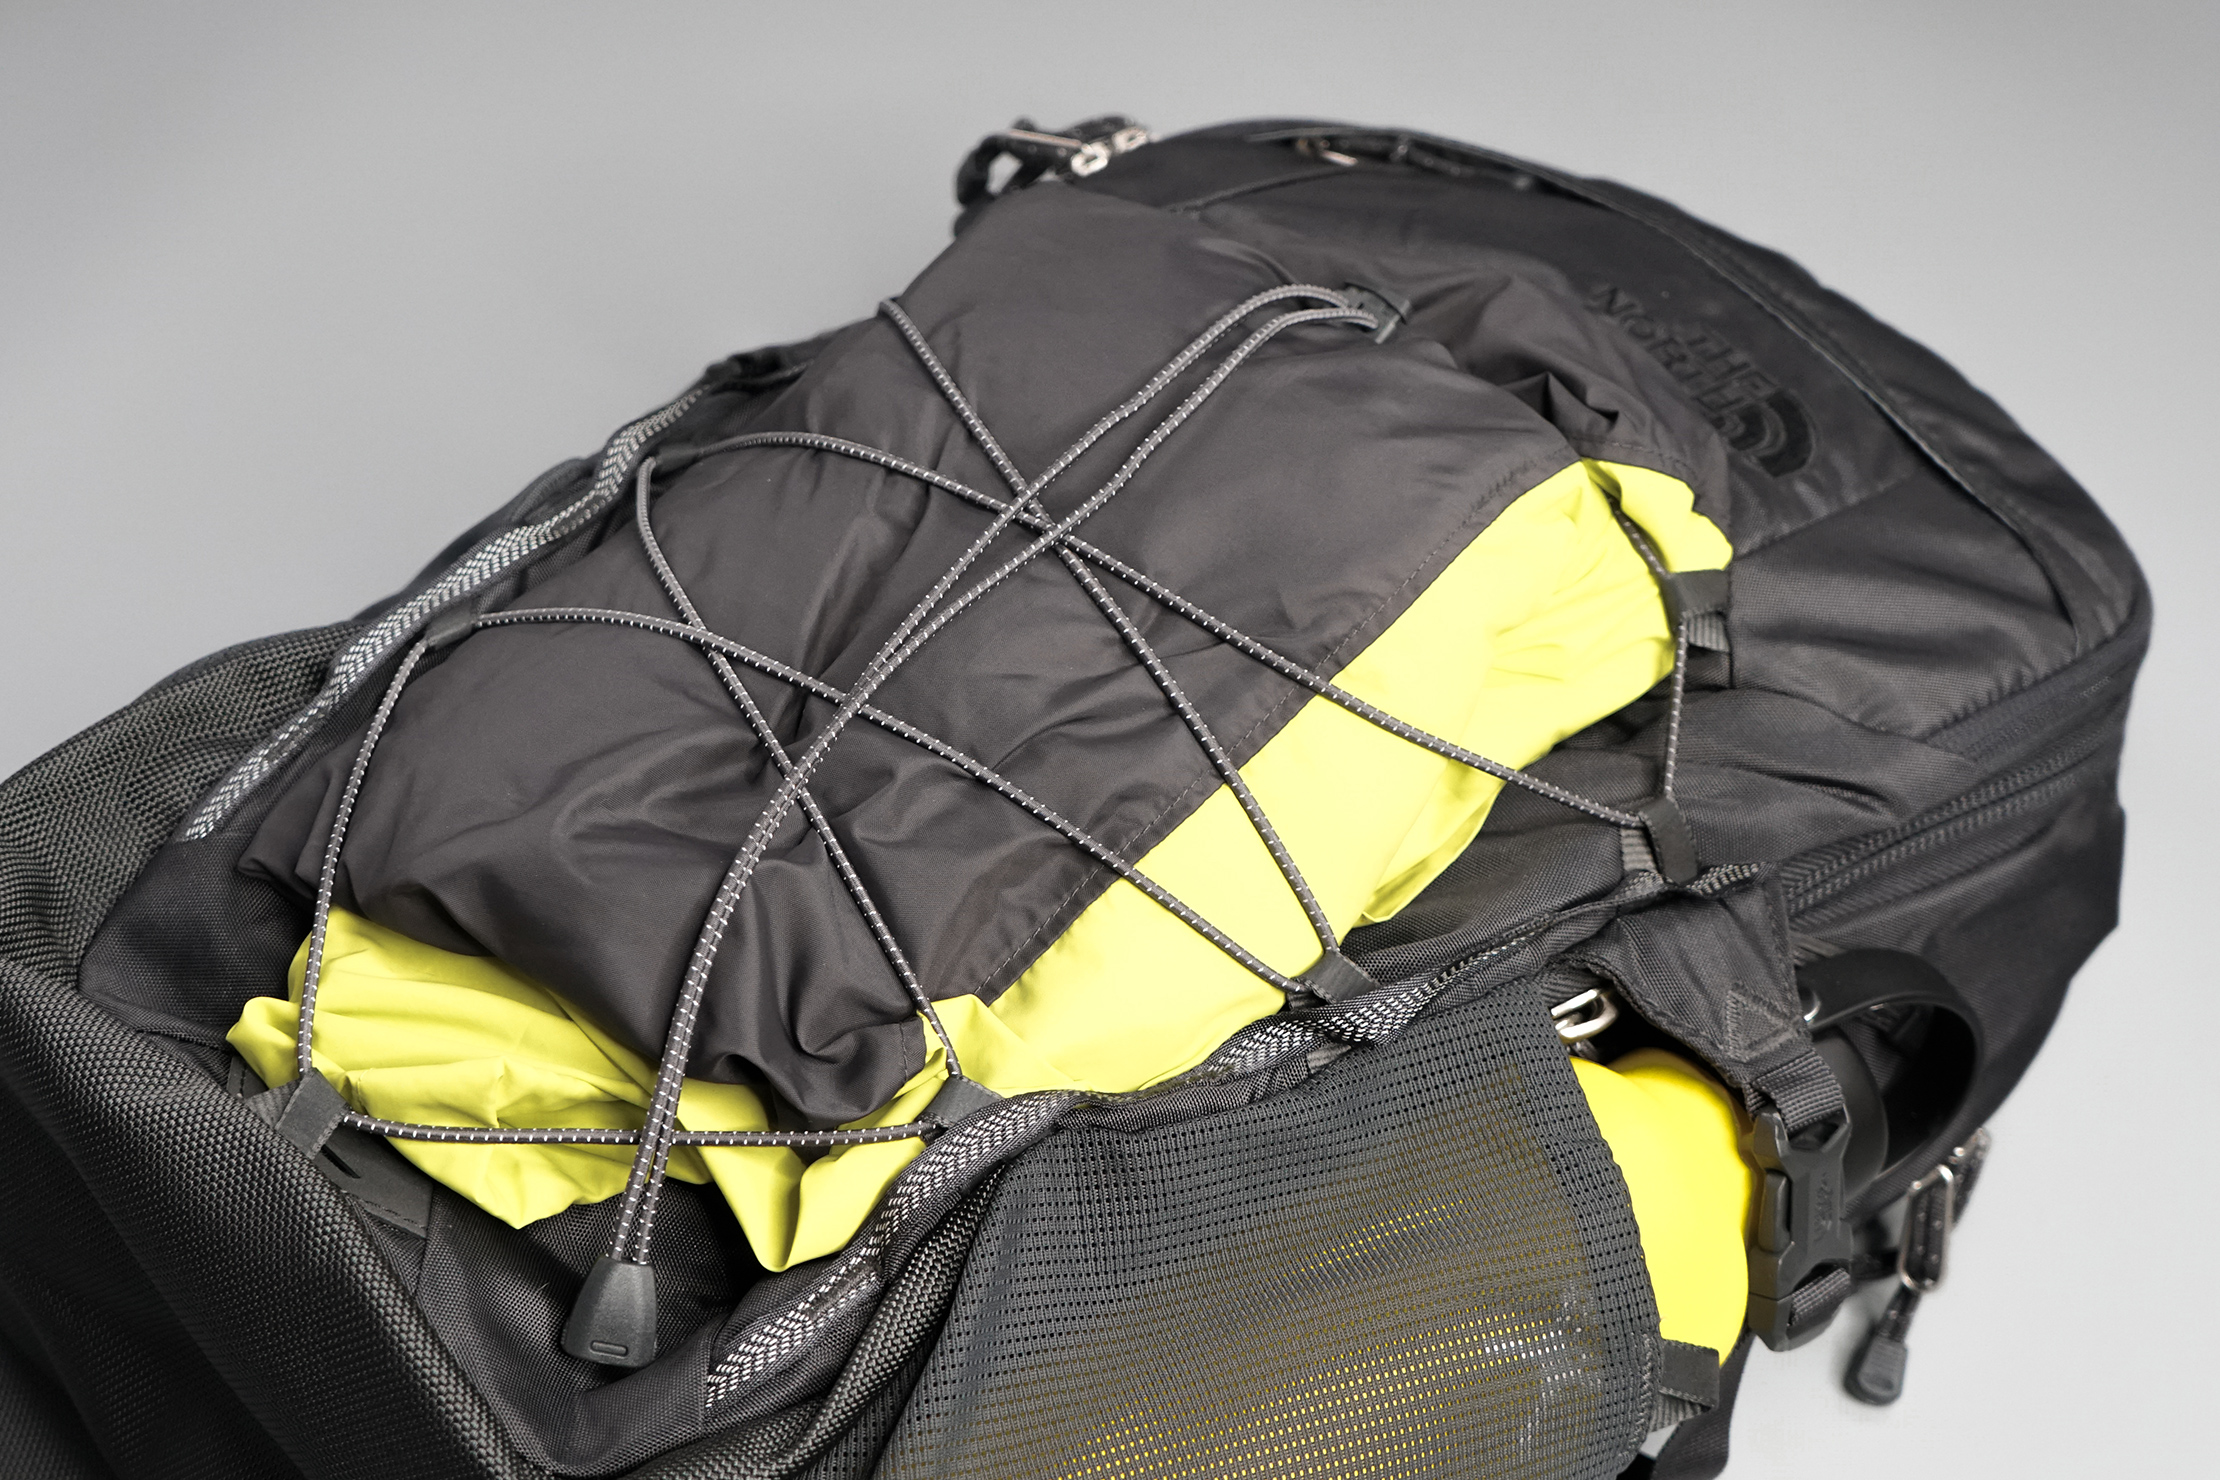 The North Face Borealis Backpack Bungee System